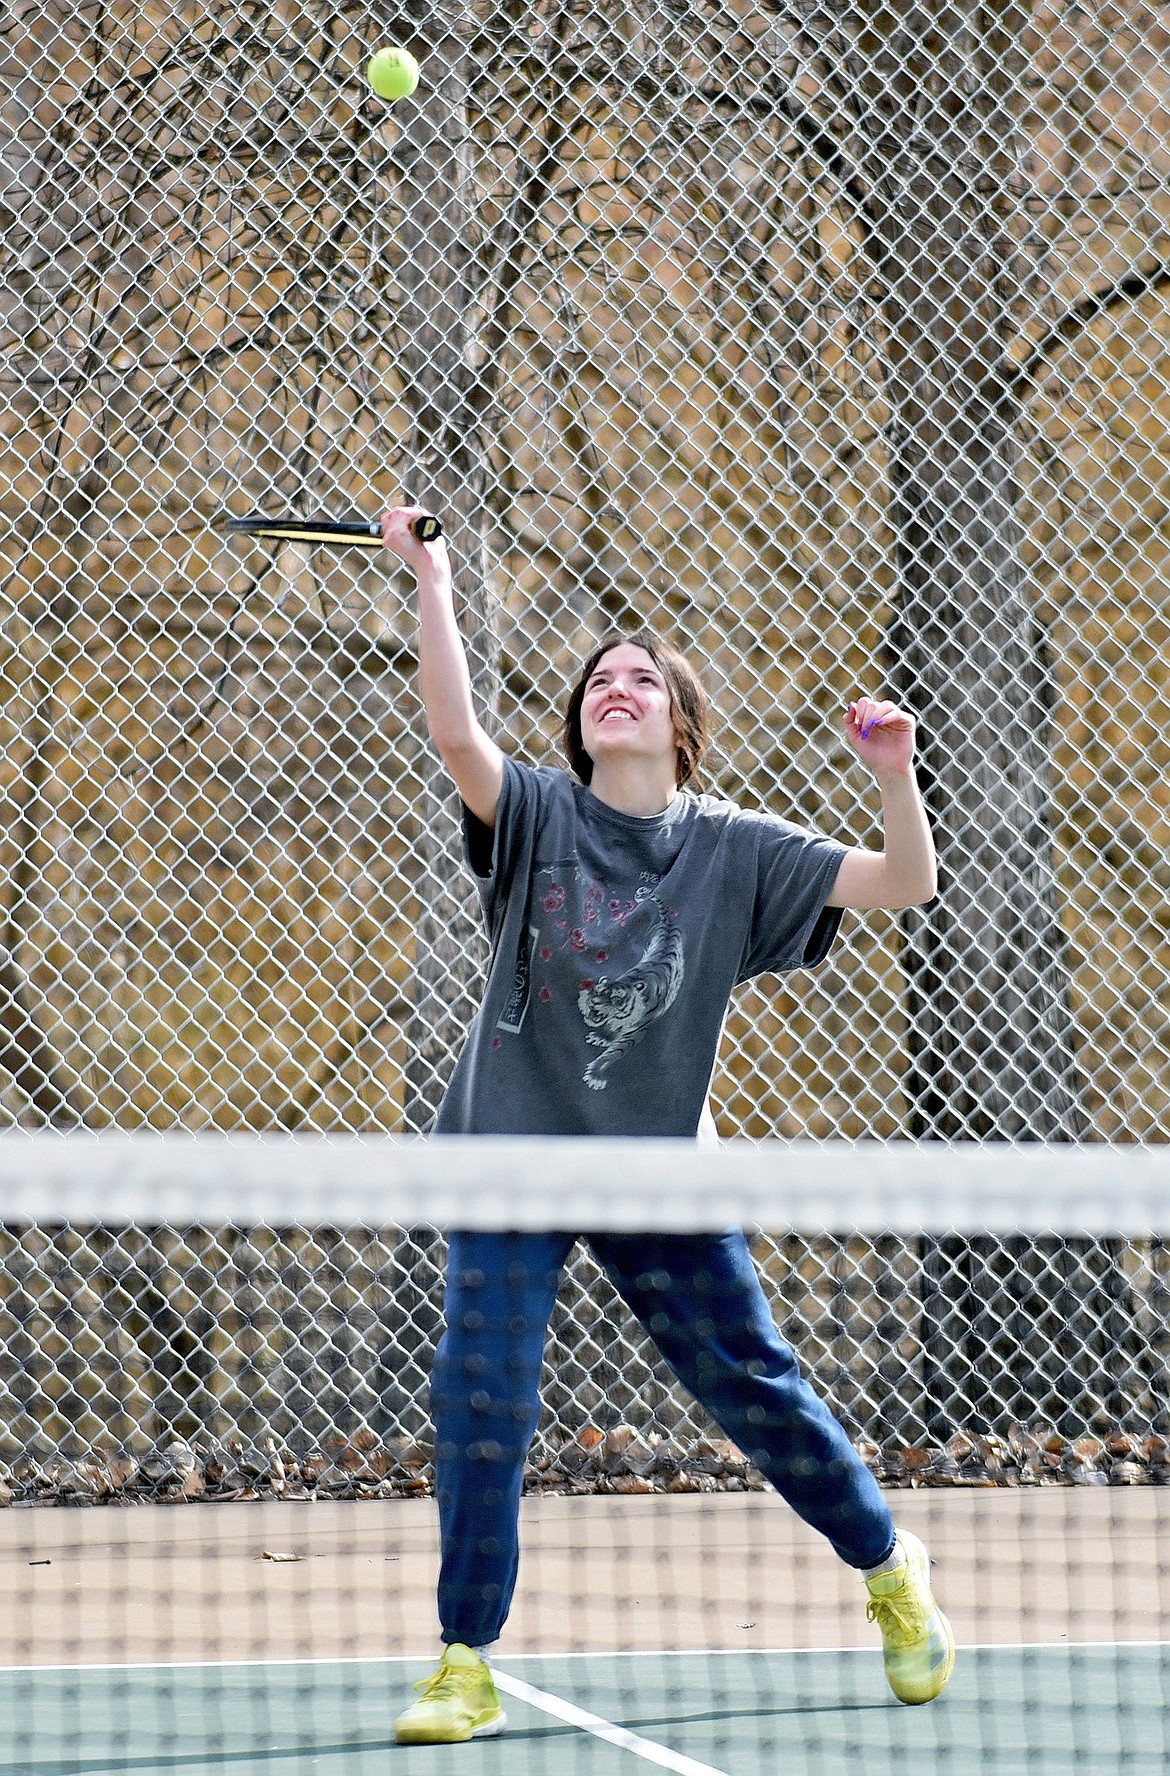 Whitefish's Ashley Gunset hits a ball during a drill at a high school girls tennis practice on Thursday. (Whitney England/Whitefish Pilot)